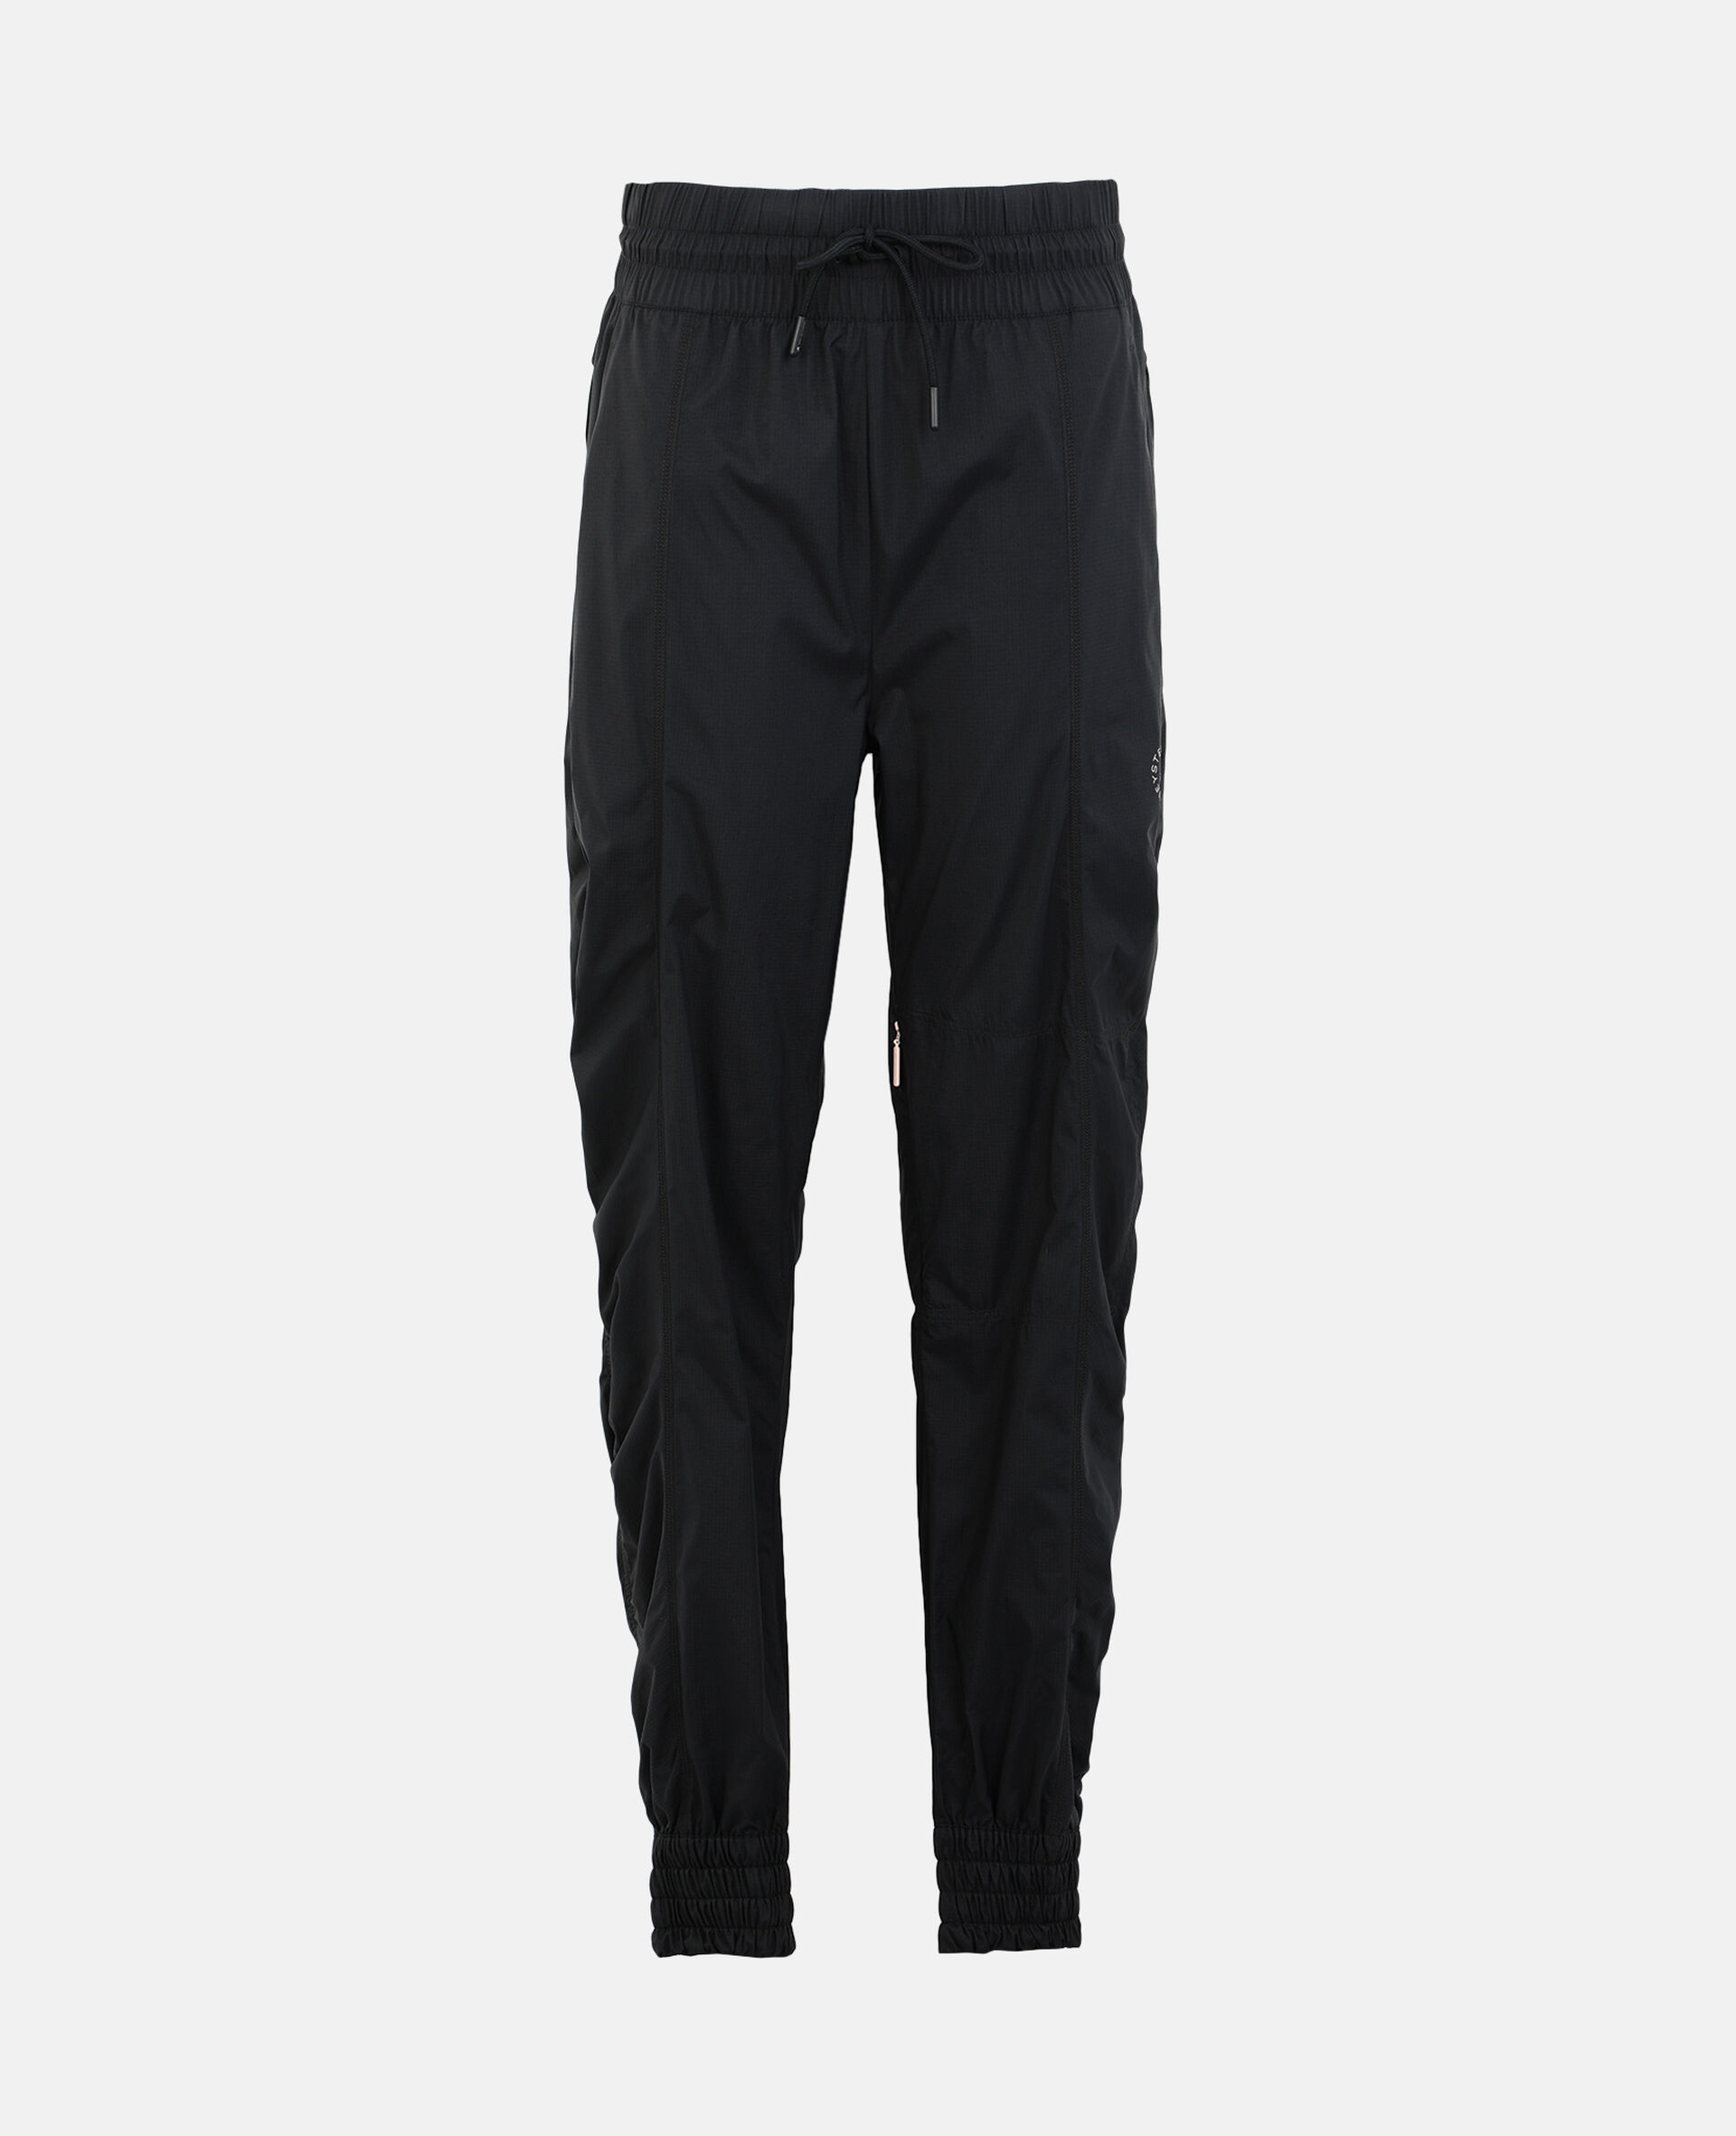 Black Woven Training Pants-Black-large image number 0